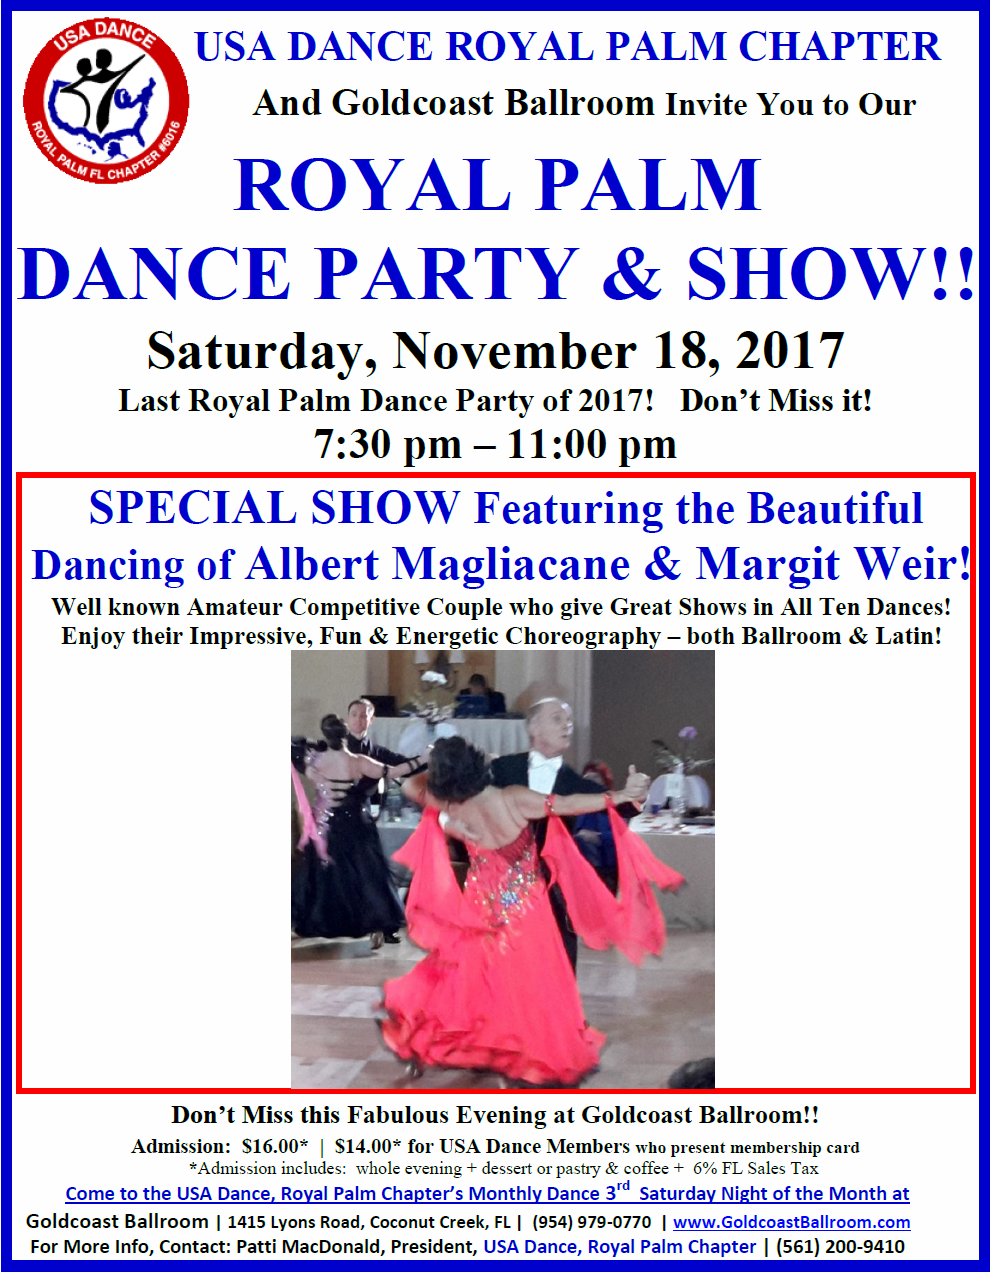 Click to Print Flyer: November 18, 2017 - Royal Palm Dance Party & Show! - at Goldcoast Ballroom